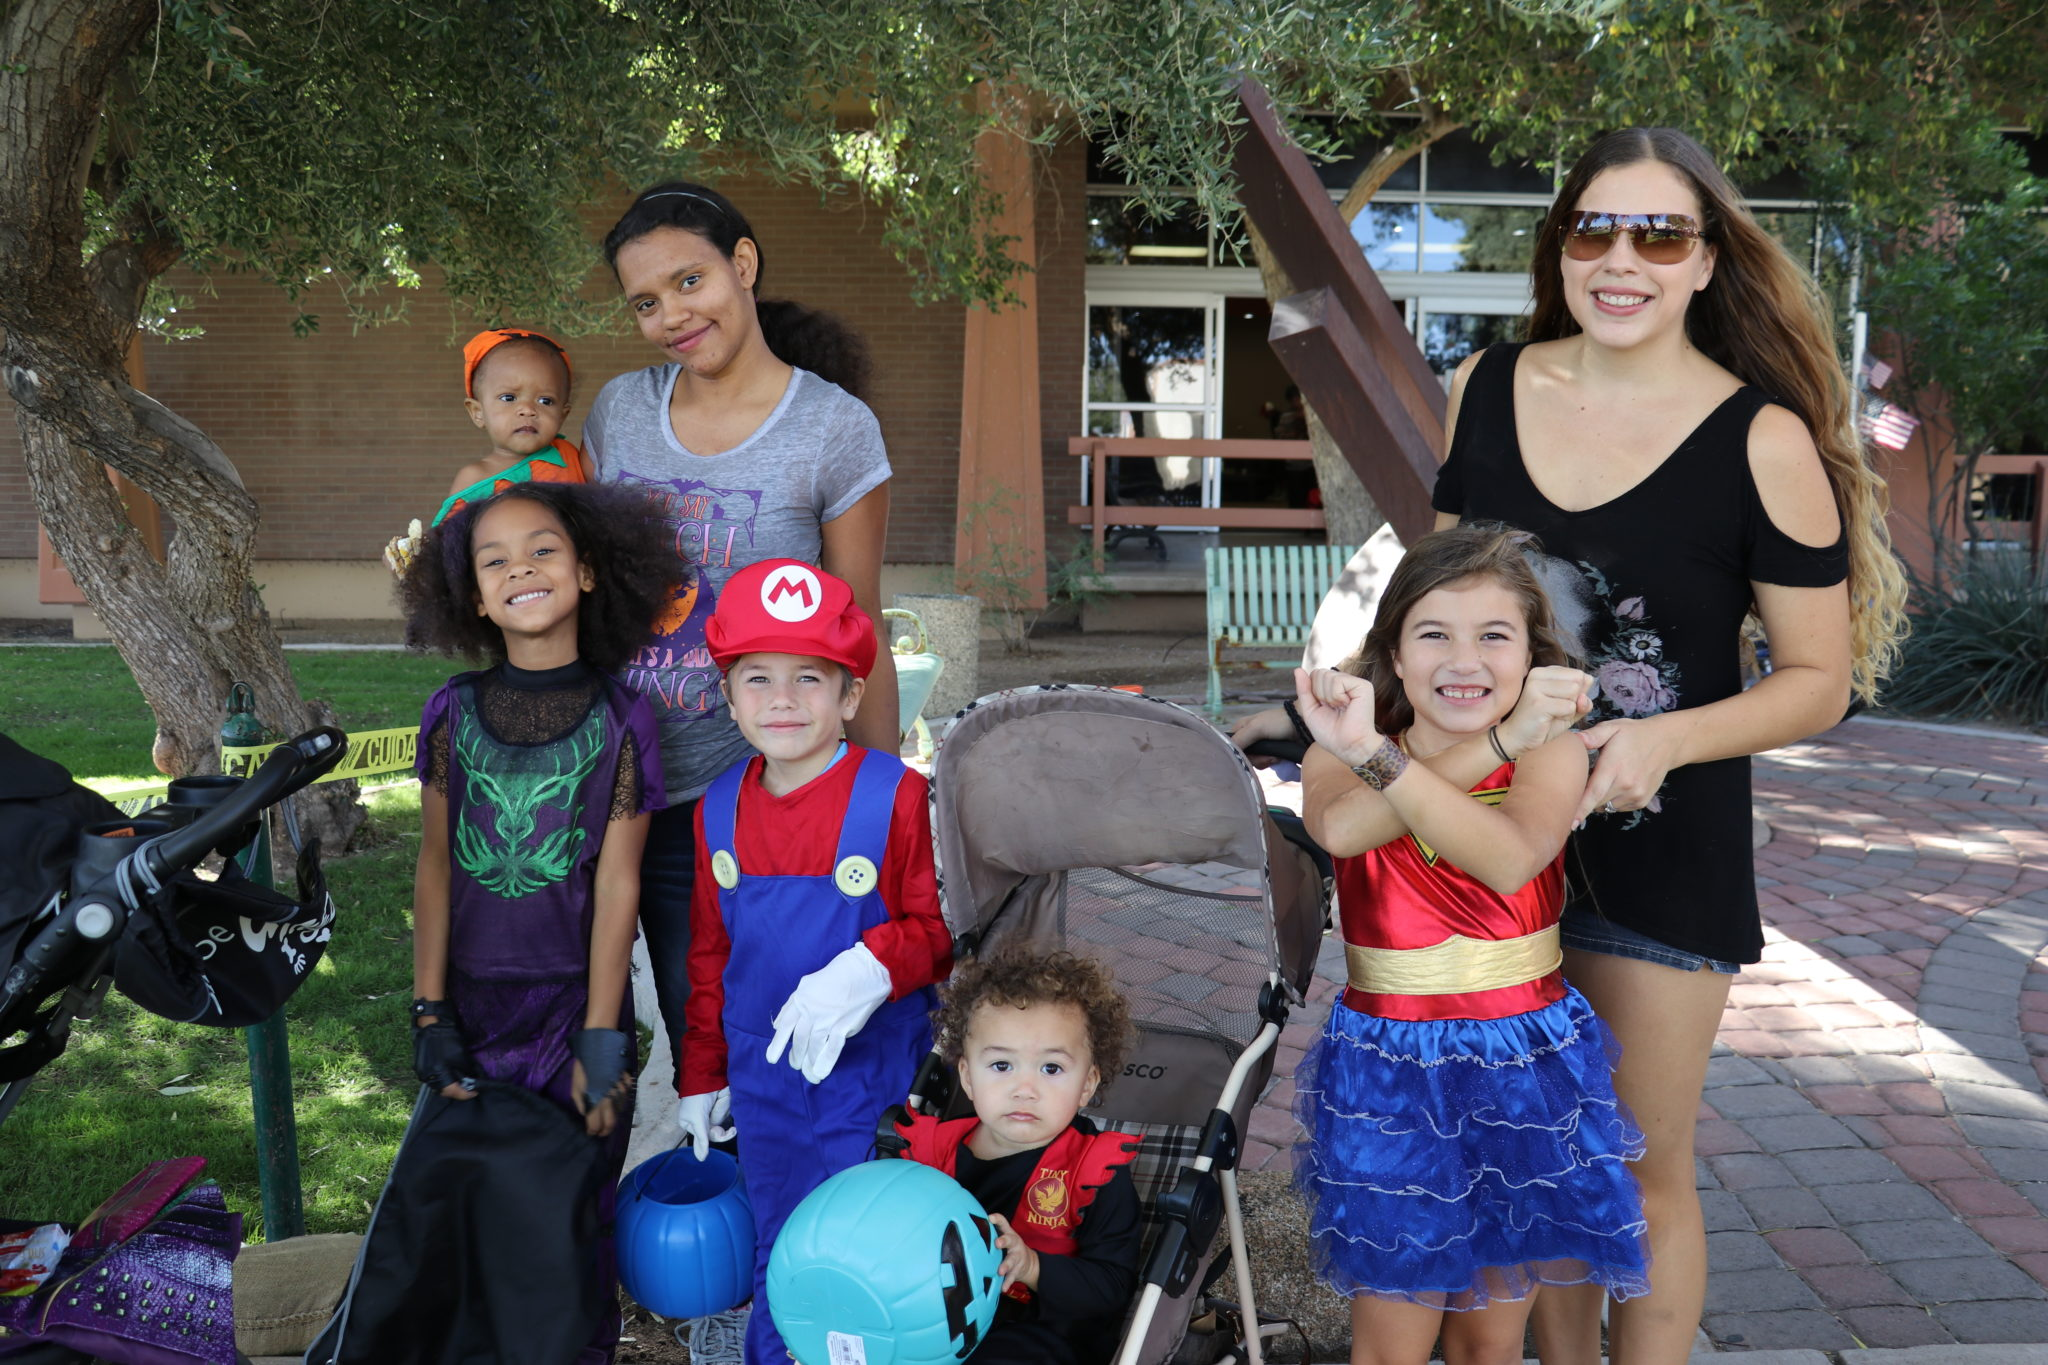 two mothers standing in line with their 5 kids all dressed up for halloween